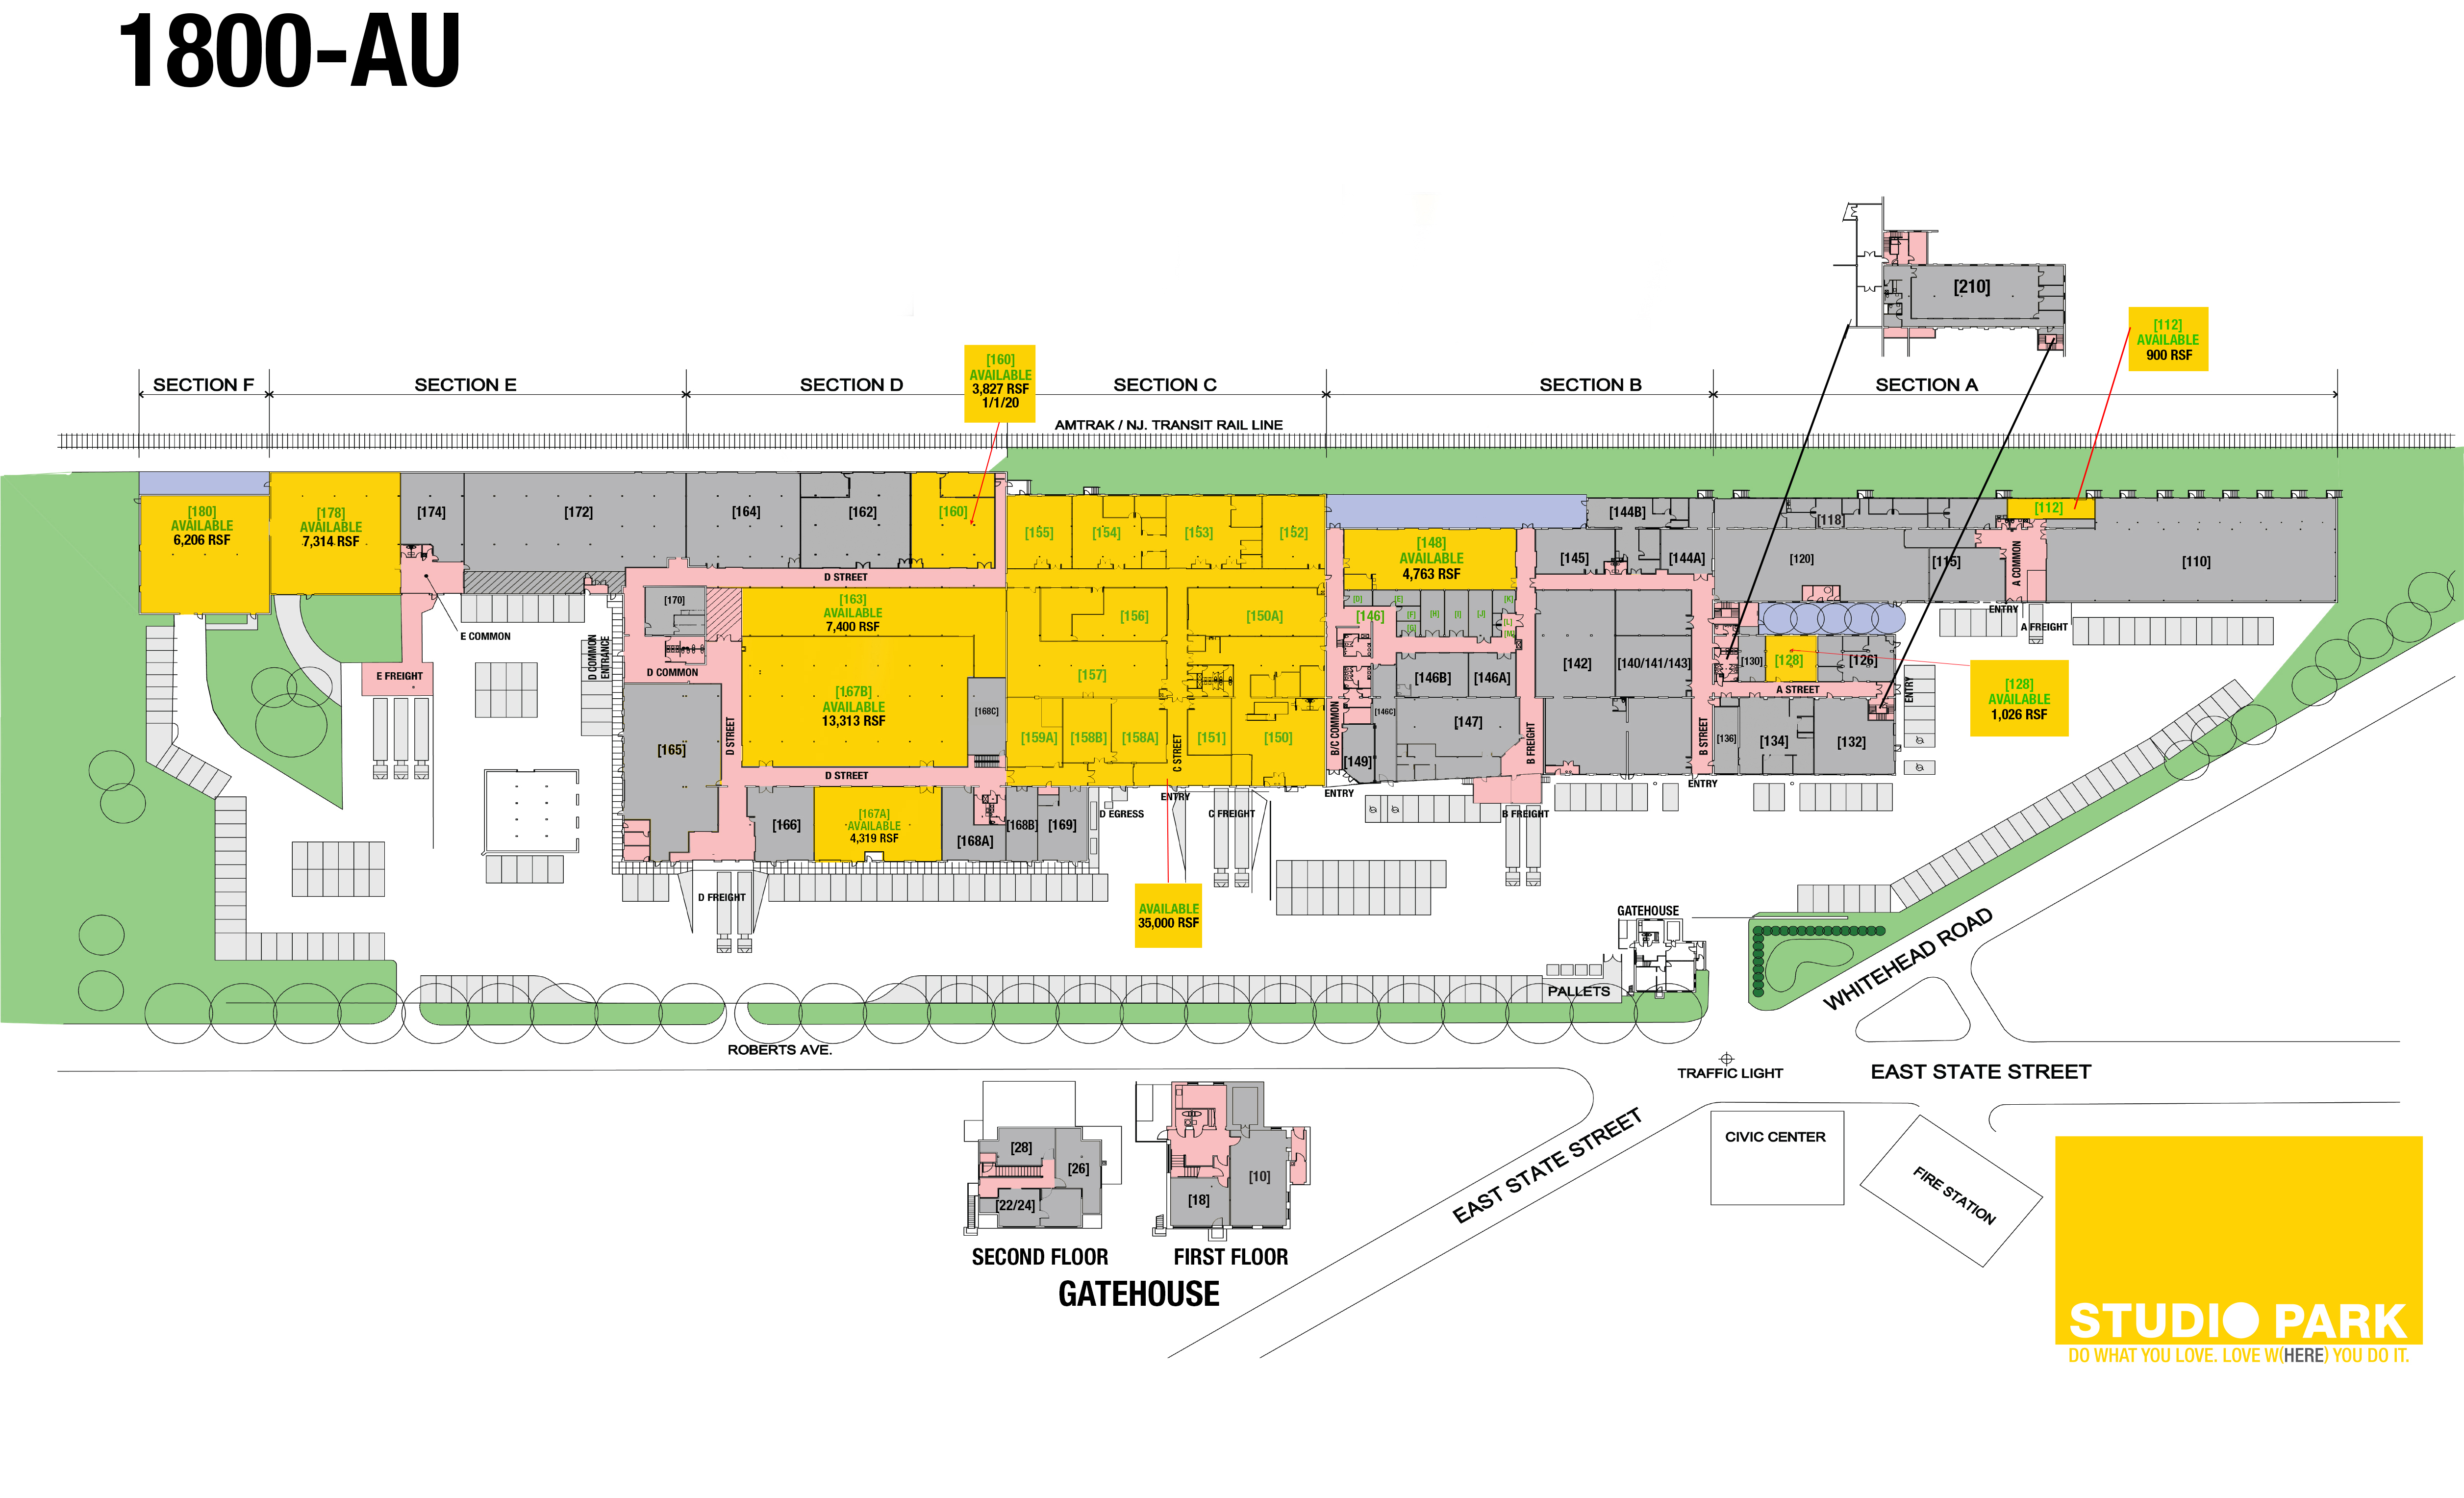 Studio Park floor plan - 12-13-17